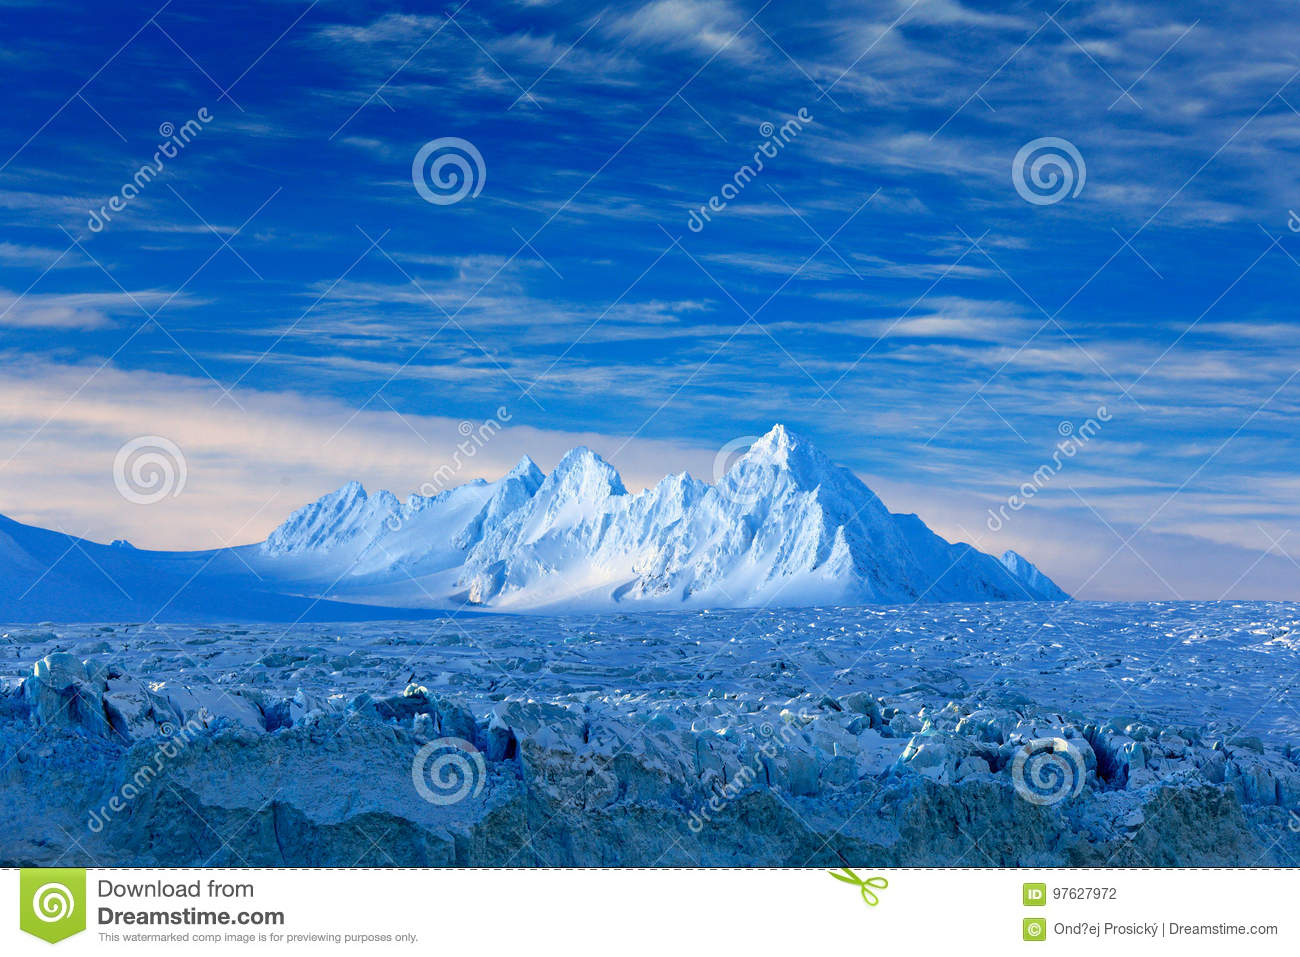 Land of ice. Travelling in Arctic Norway. White snowy mountain, blue glacier Svalbard, Norway. Ice in ocean. Iceberg in North pole